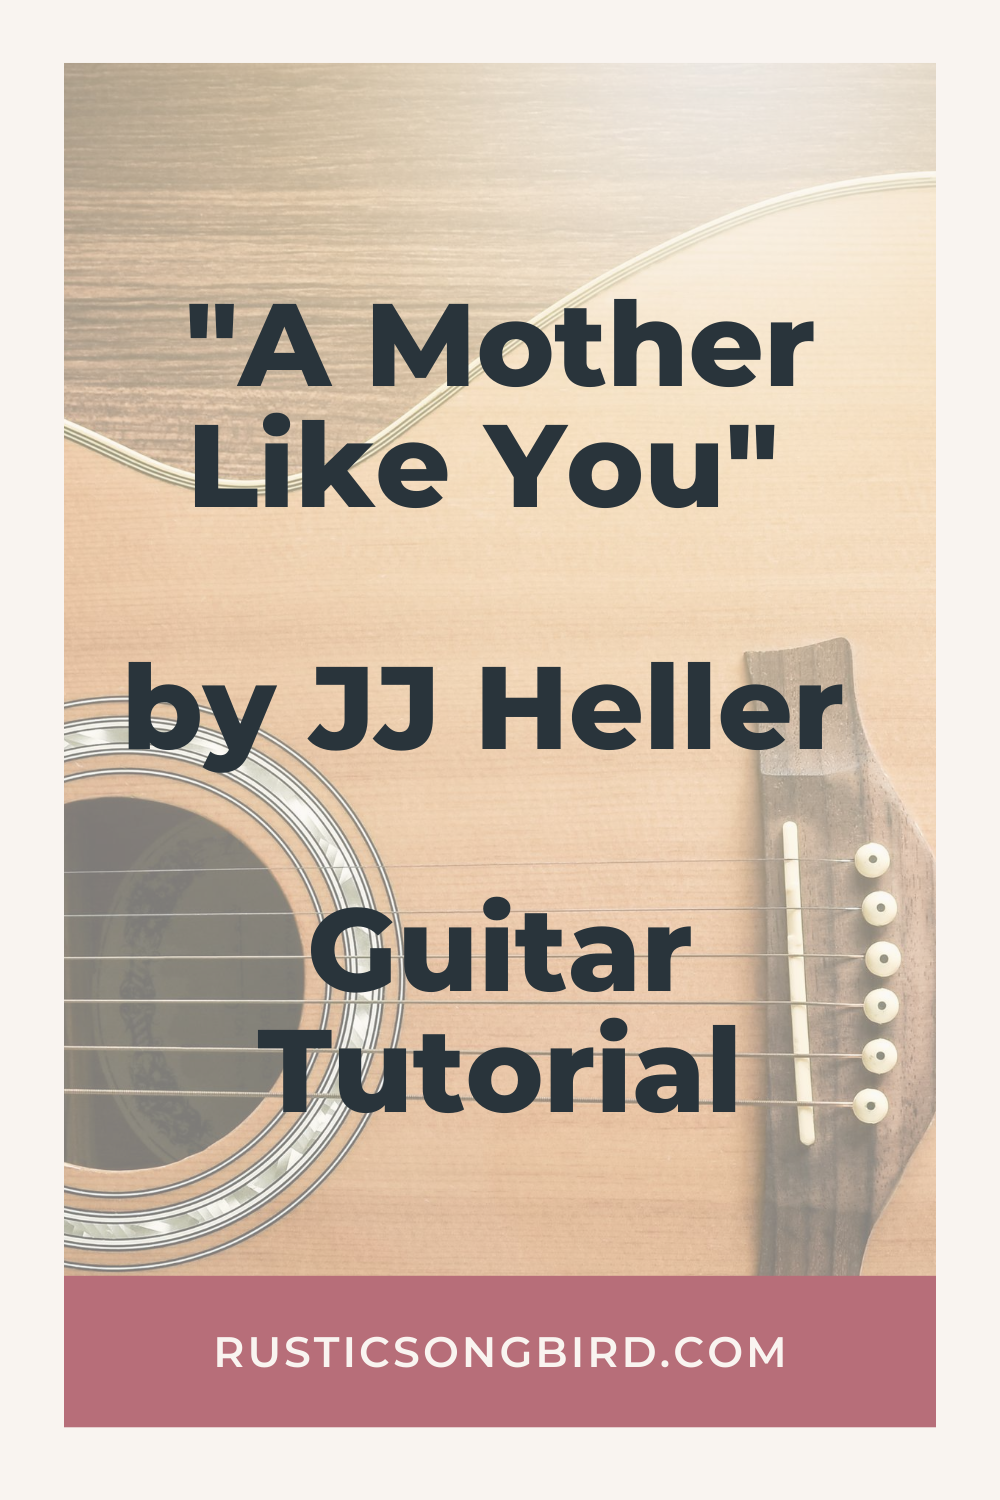 acoustic guitar background with text of the title of the blog post called